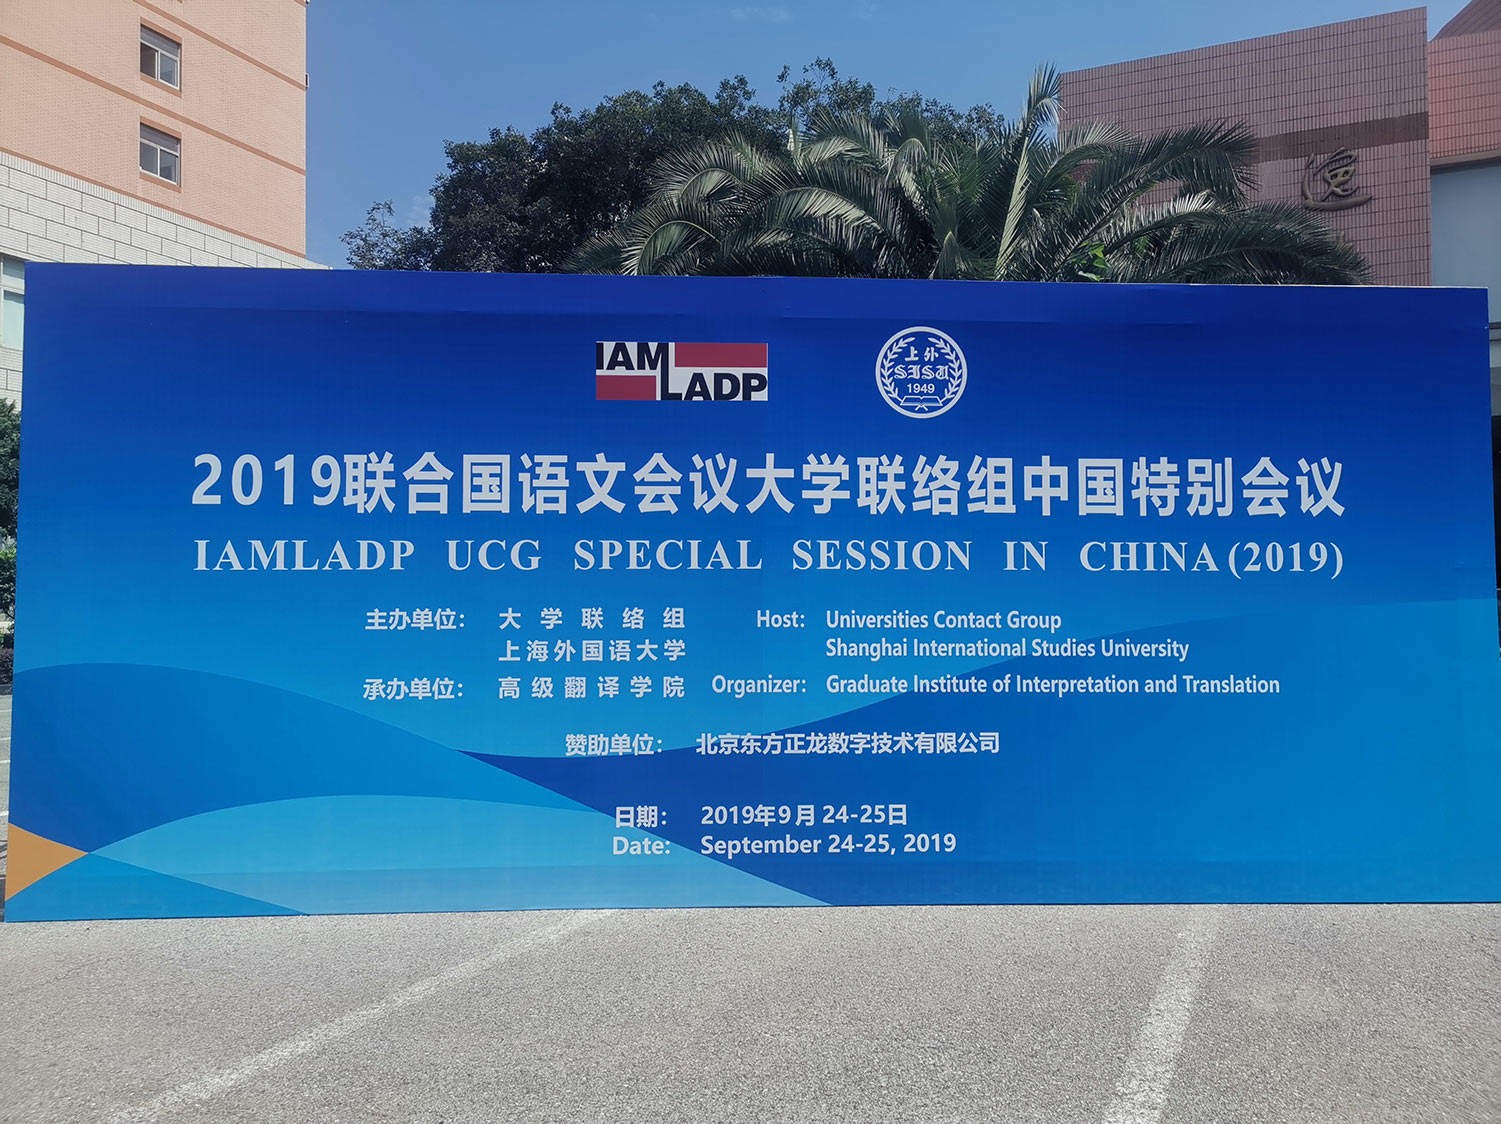 The Newclass Congratulates Successful Conclusion of the IAMLADP (International Annual Meeting on Lan